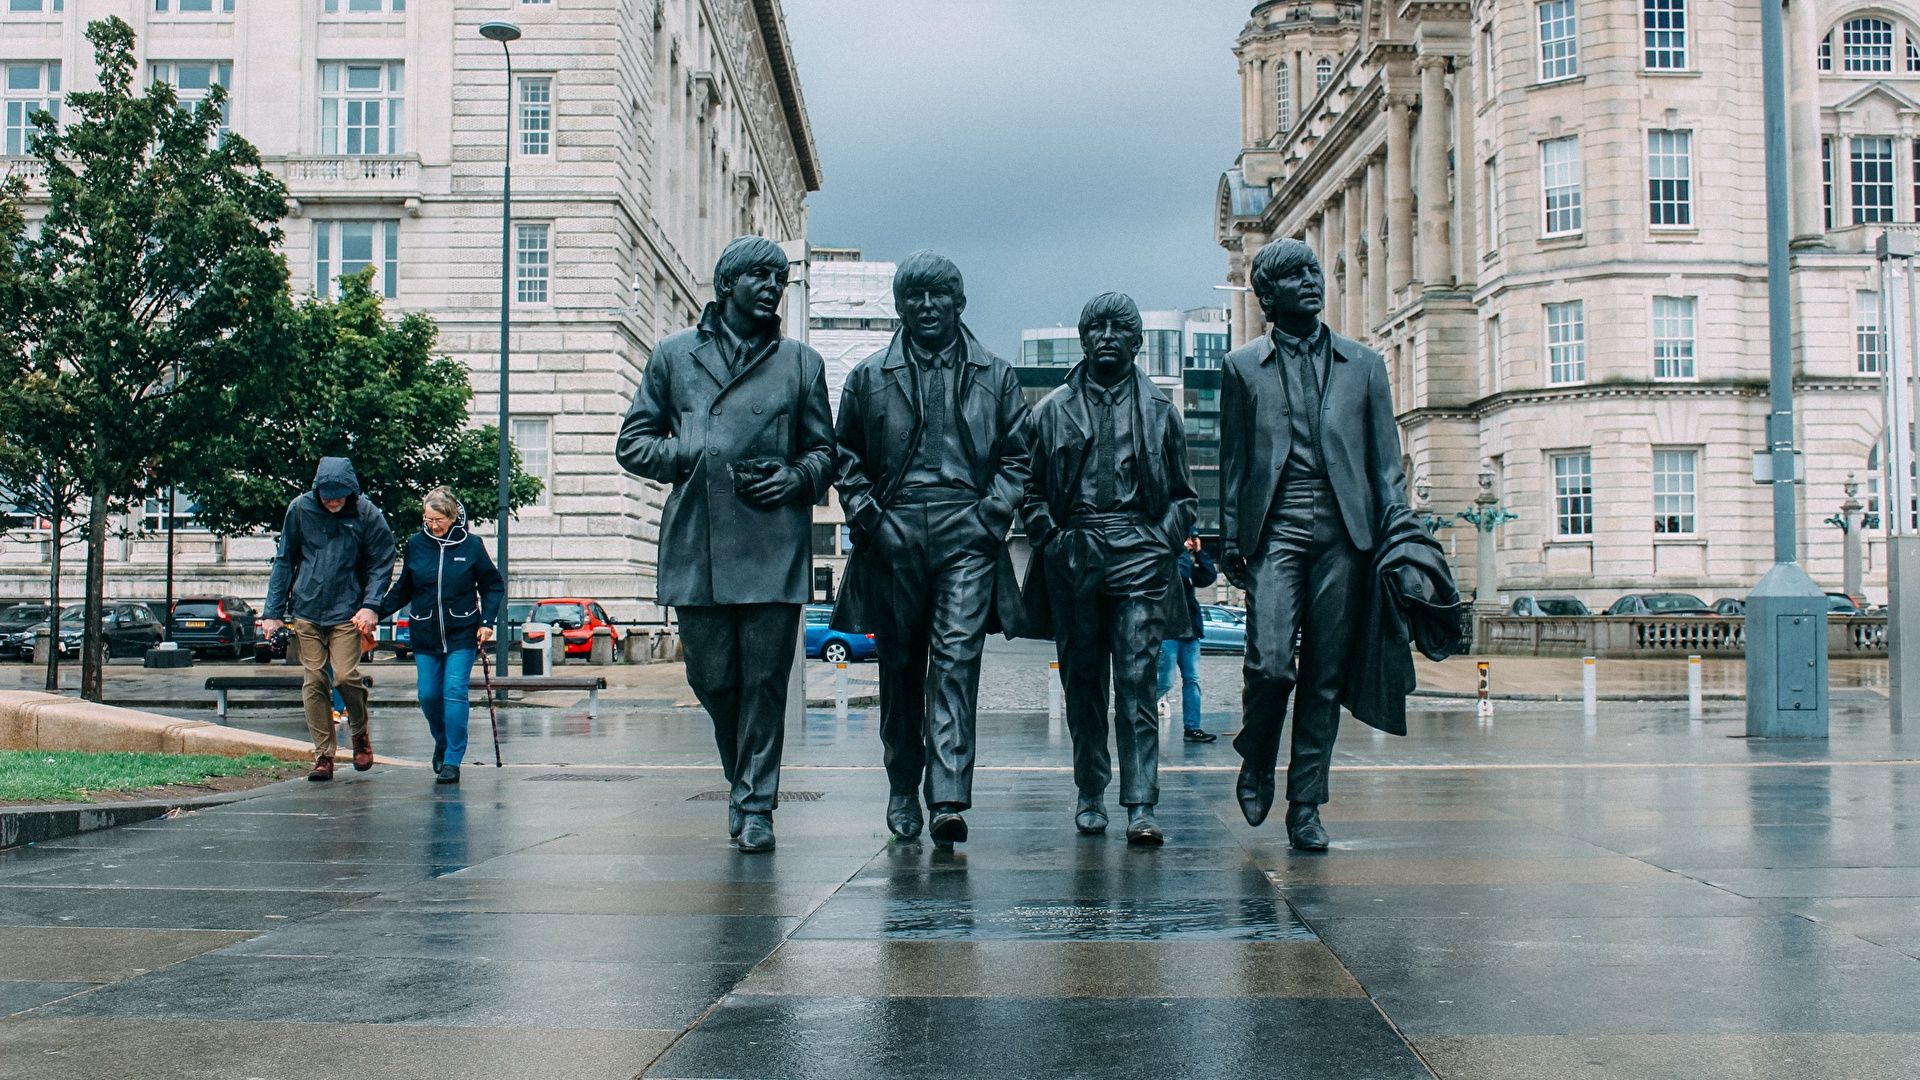 Image The Beatles England Monuments Liverpool Cities 1920x1080